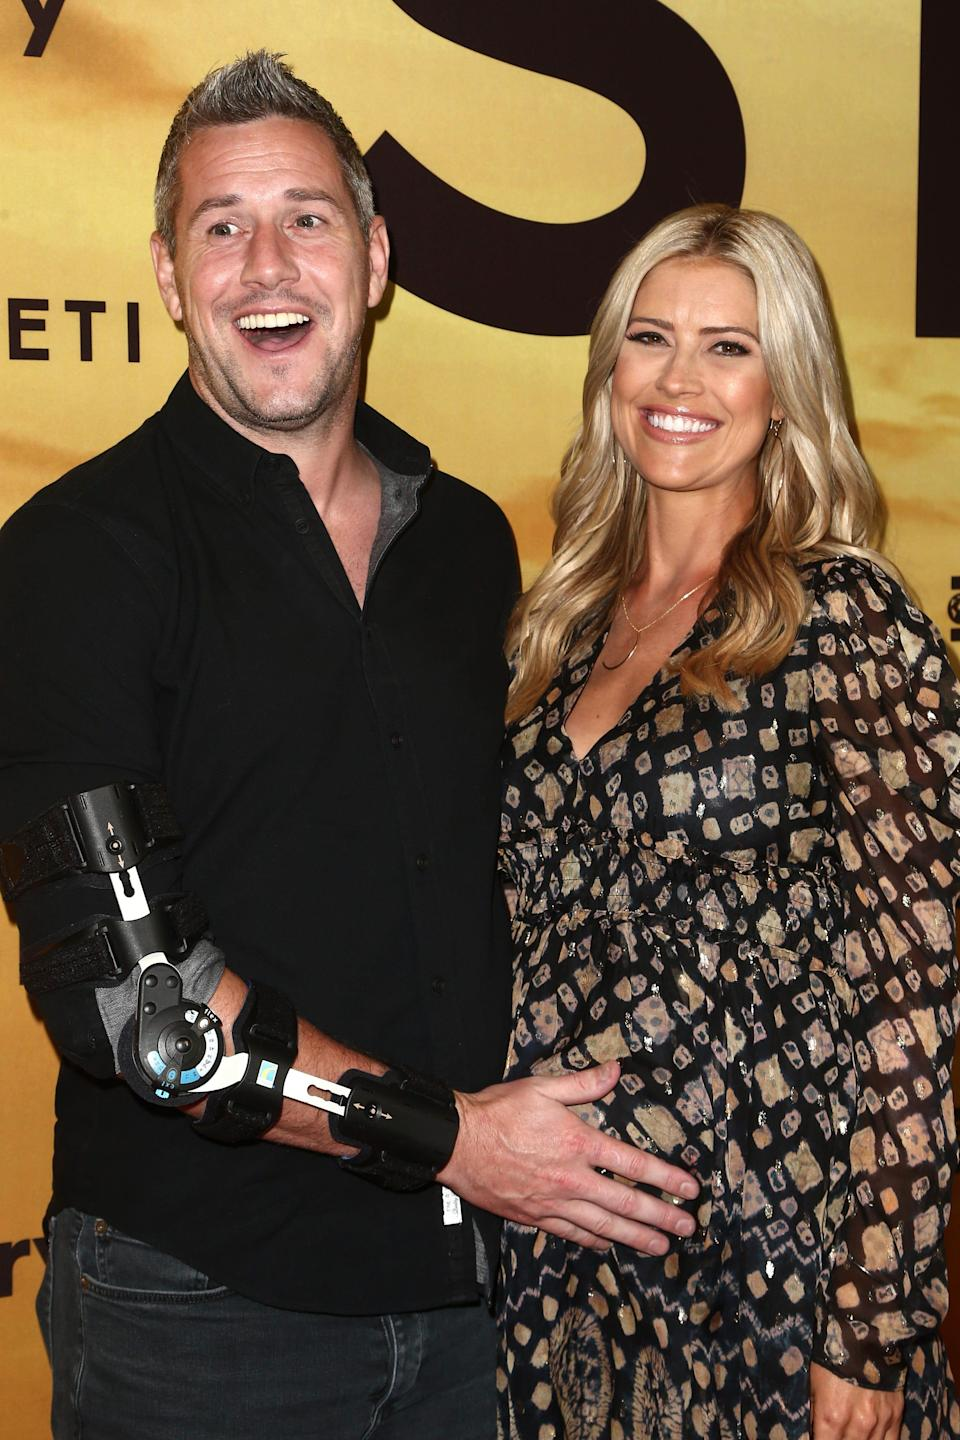 Christina Haack and Ant Anstead finalized their divorce in June 2021, nine months after they announced their separation on social media.